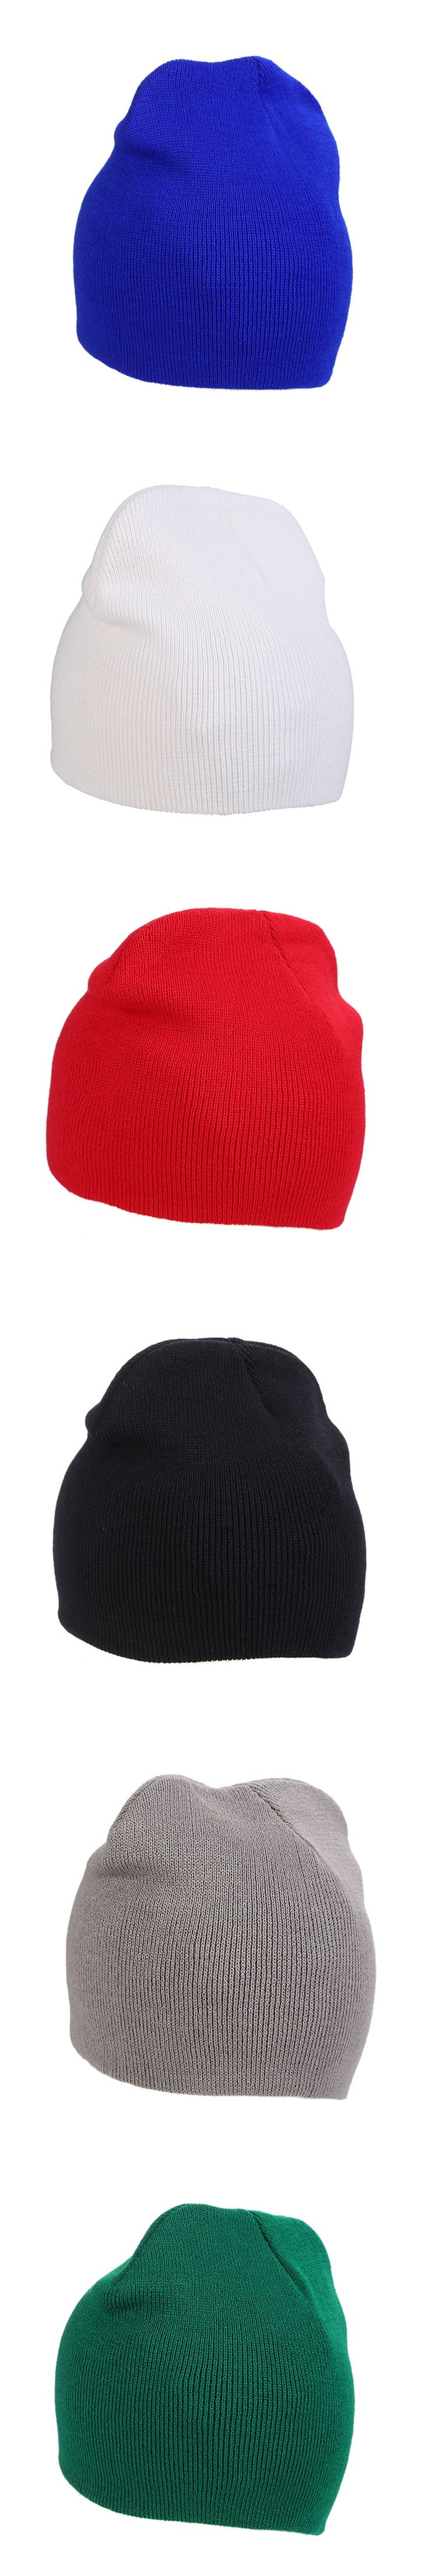 Outdoor Men Women Casual Solid Color Knitted Winter Warm Short Beanie Ski Hat